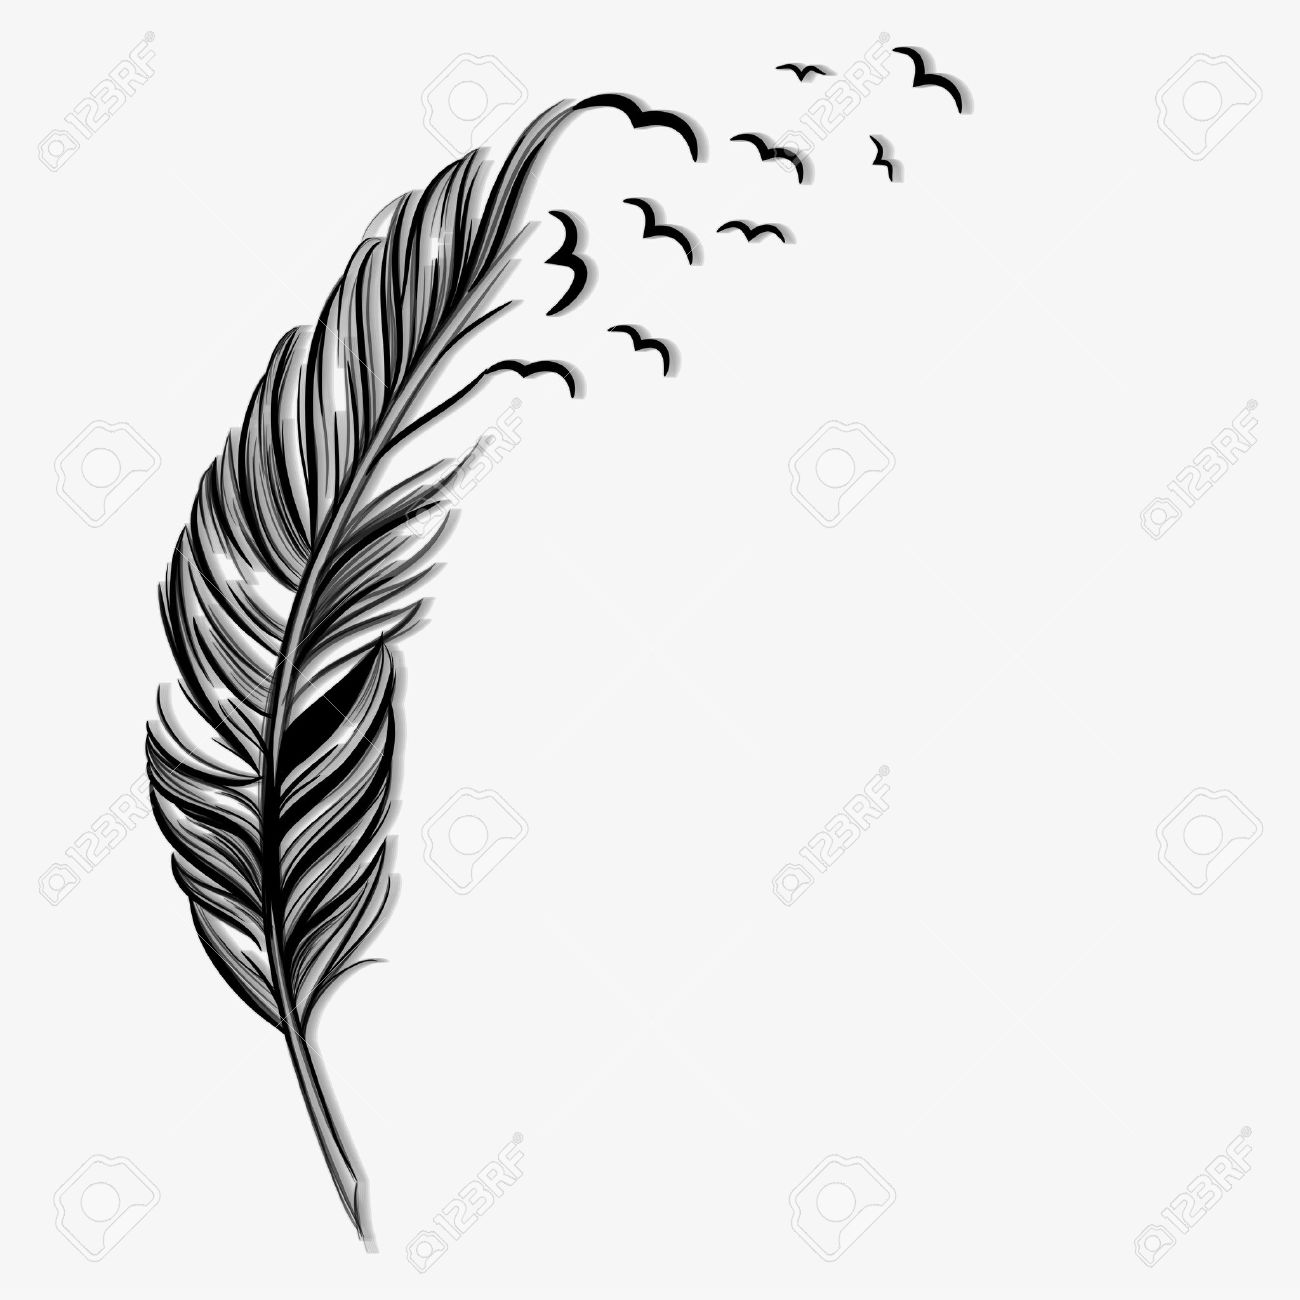 Birds flying ot of a quill - 21020284